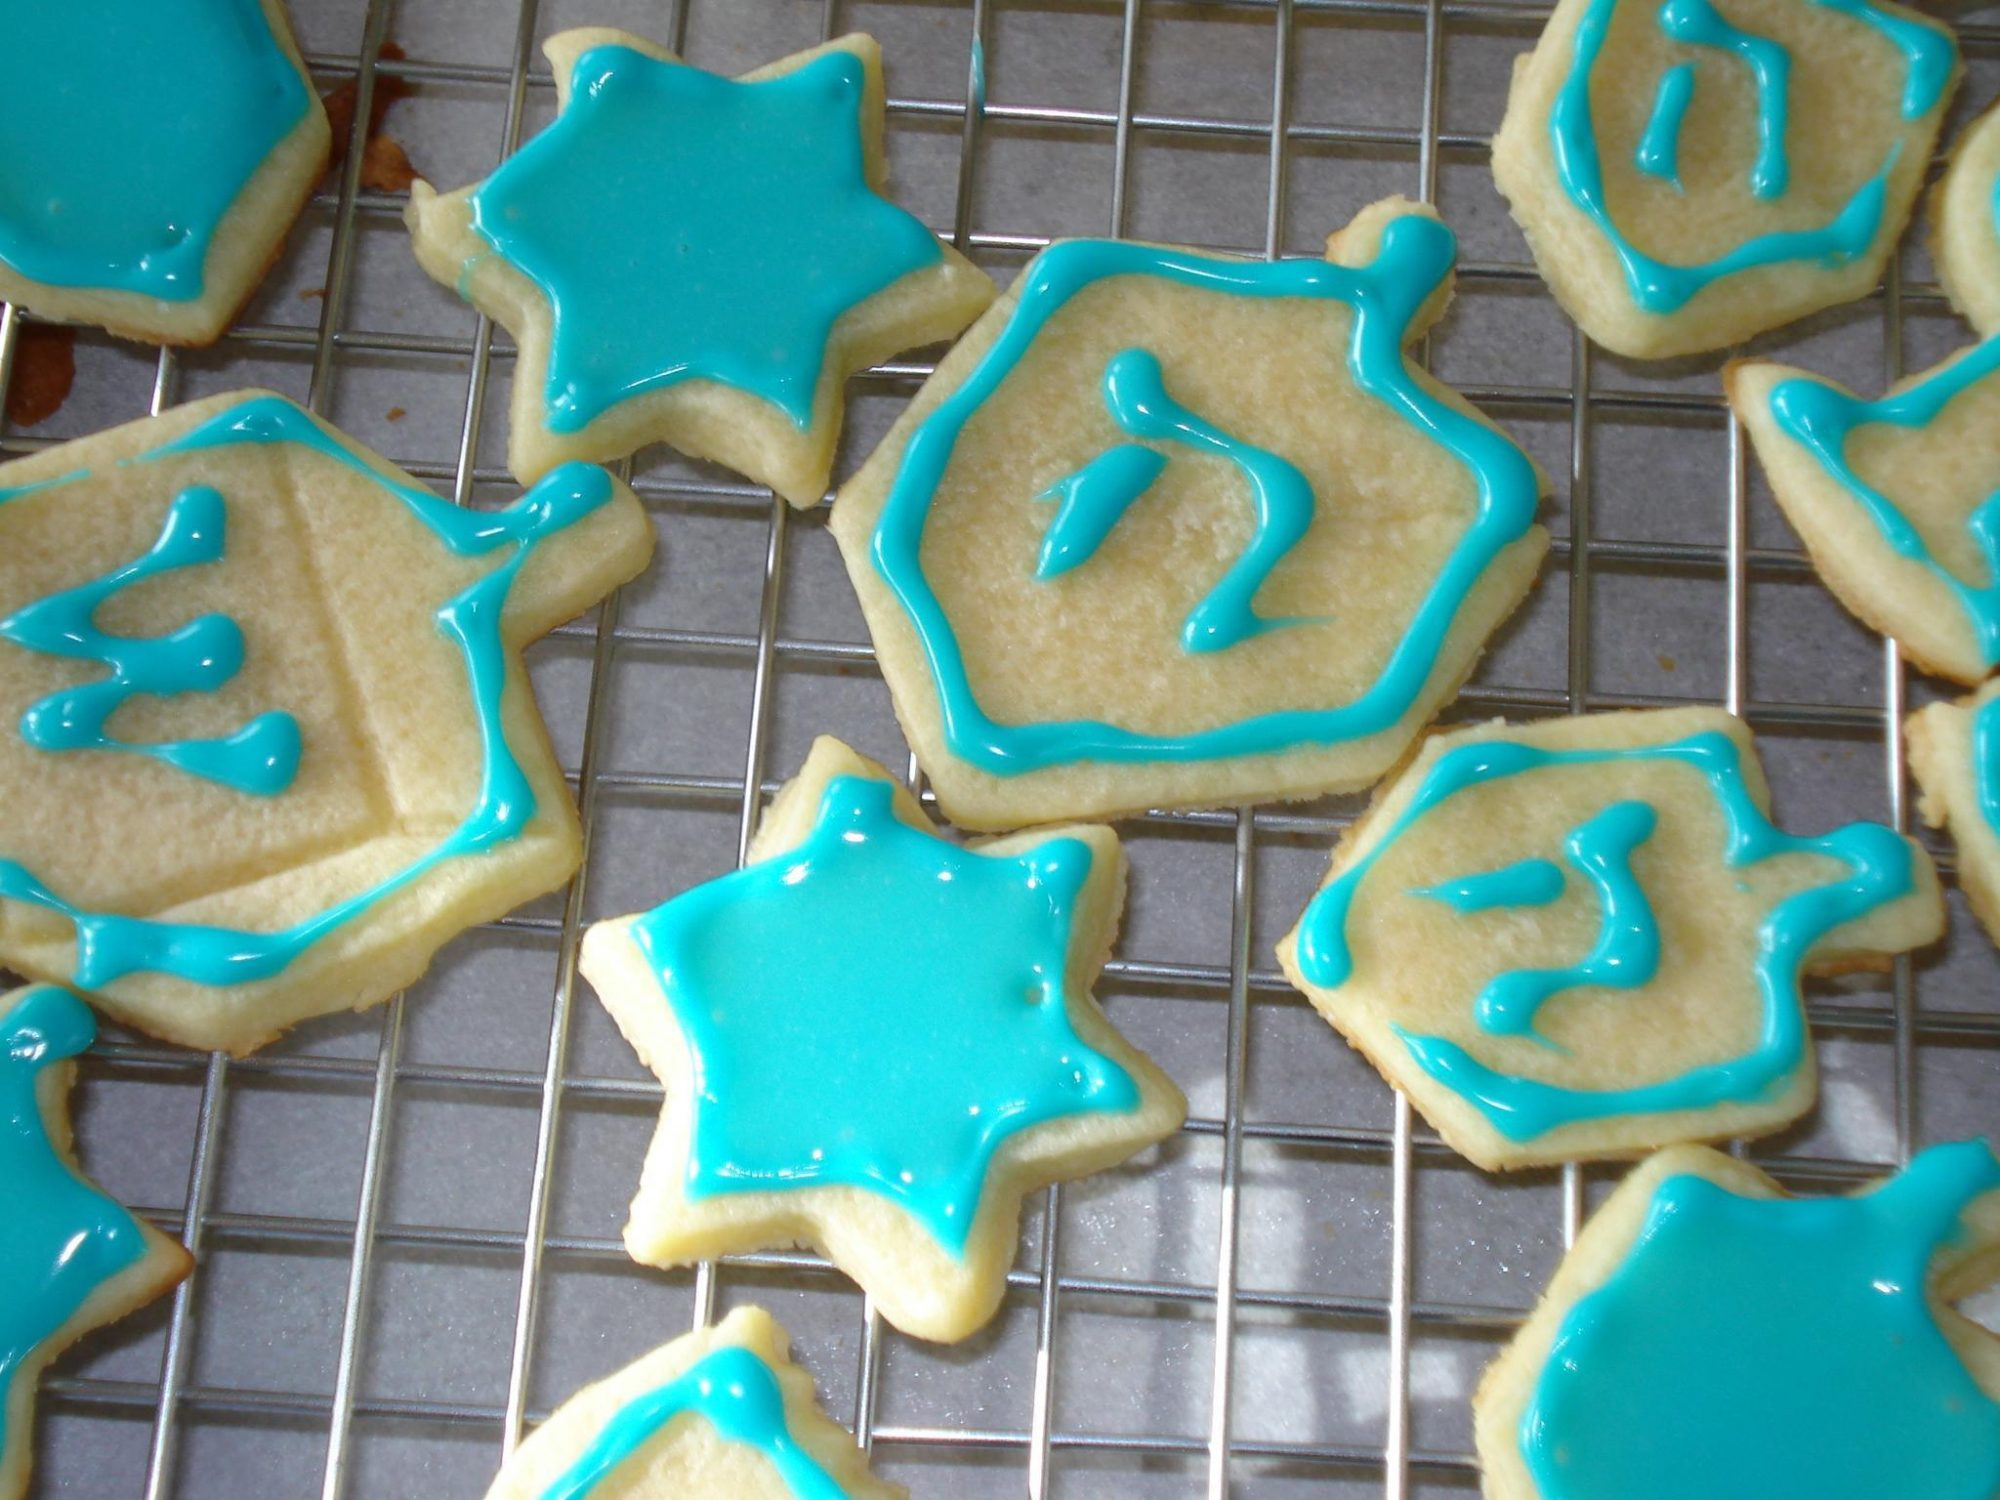 Chanukkah cookies decorated like dreidels and Stars of David with blue icing